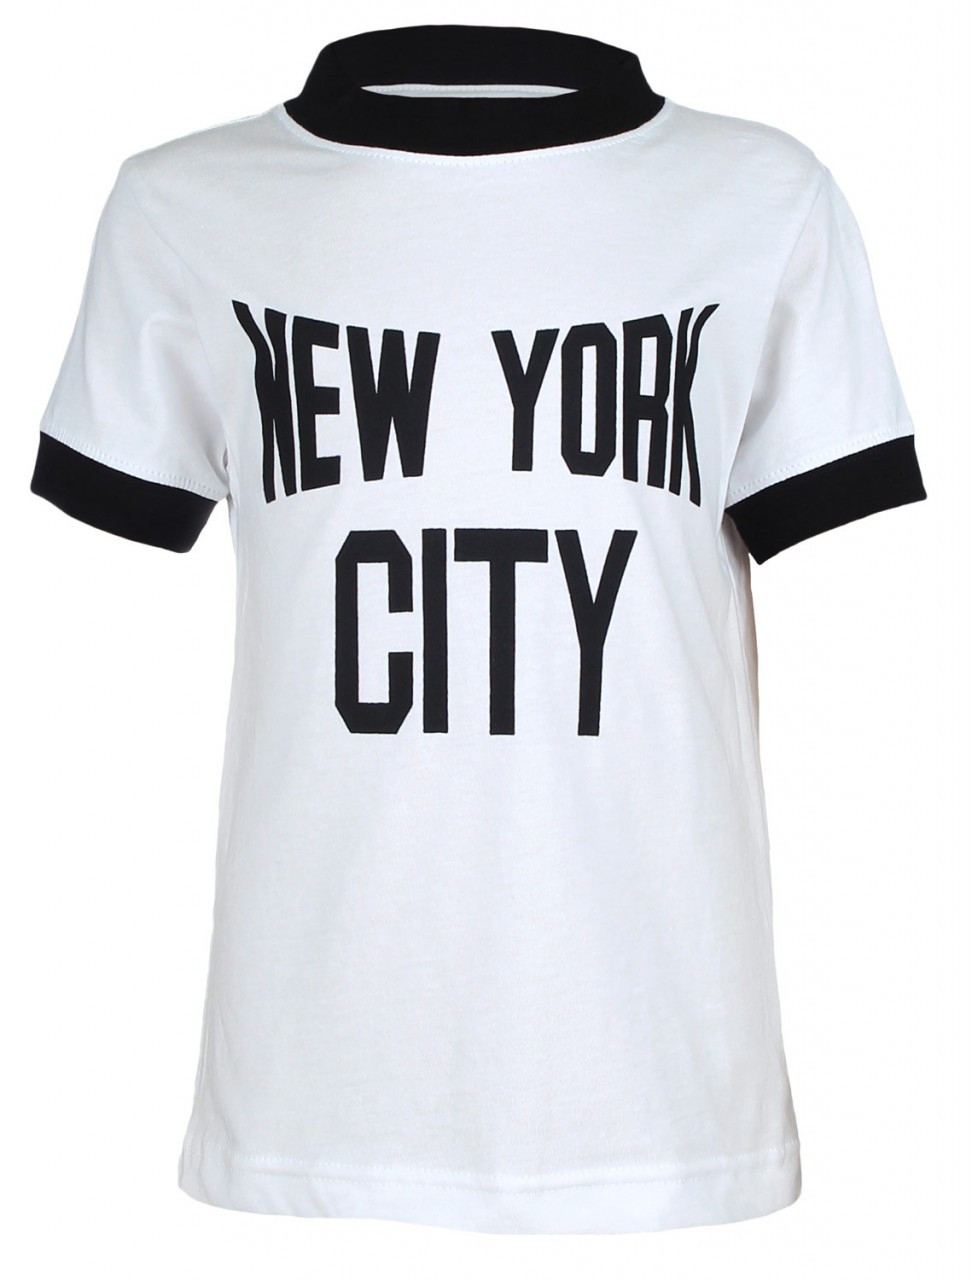 NYC White Ringer Design Kids T-Shirt Photo. Loading zoom b3af847a1b1